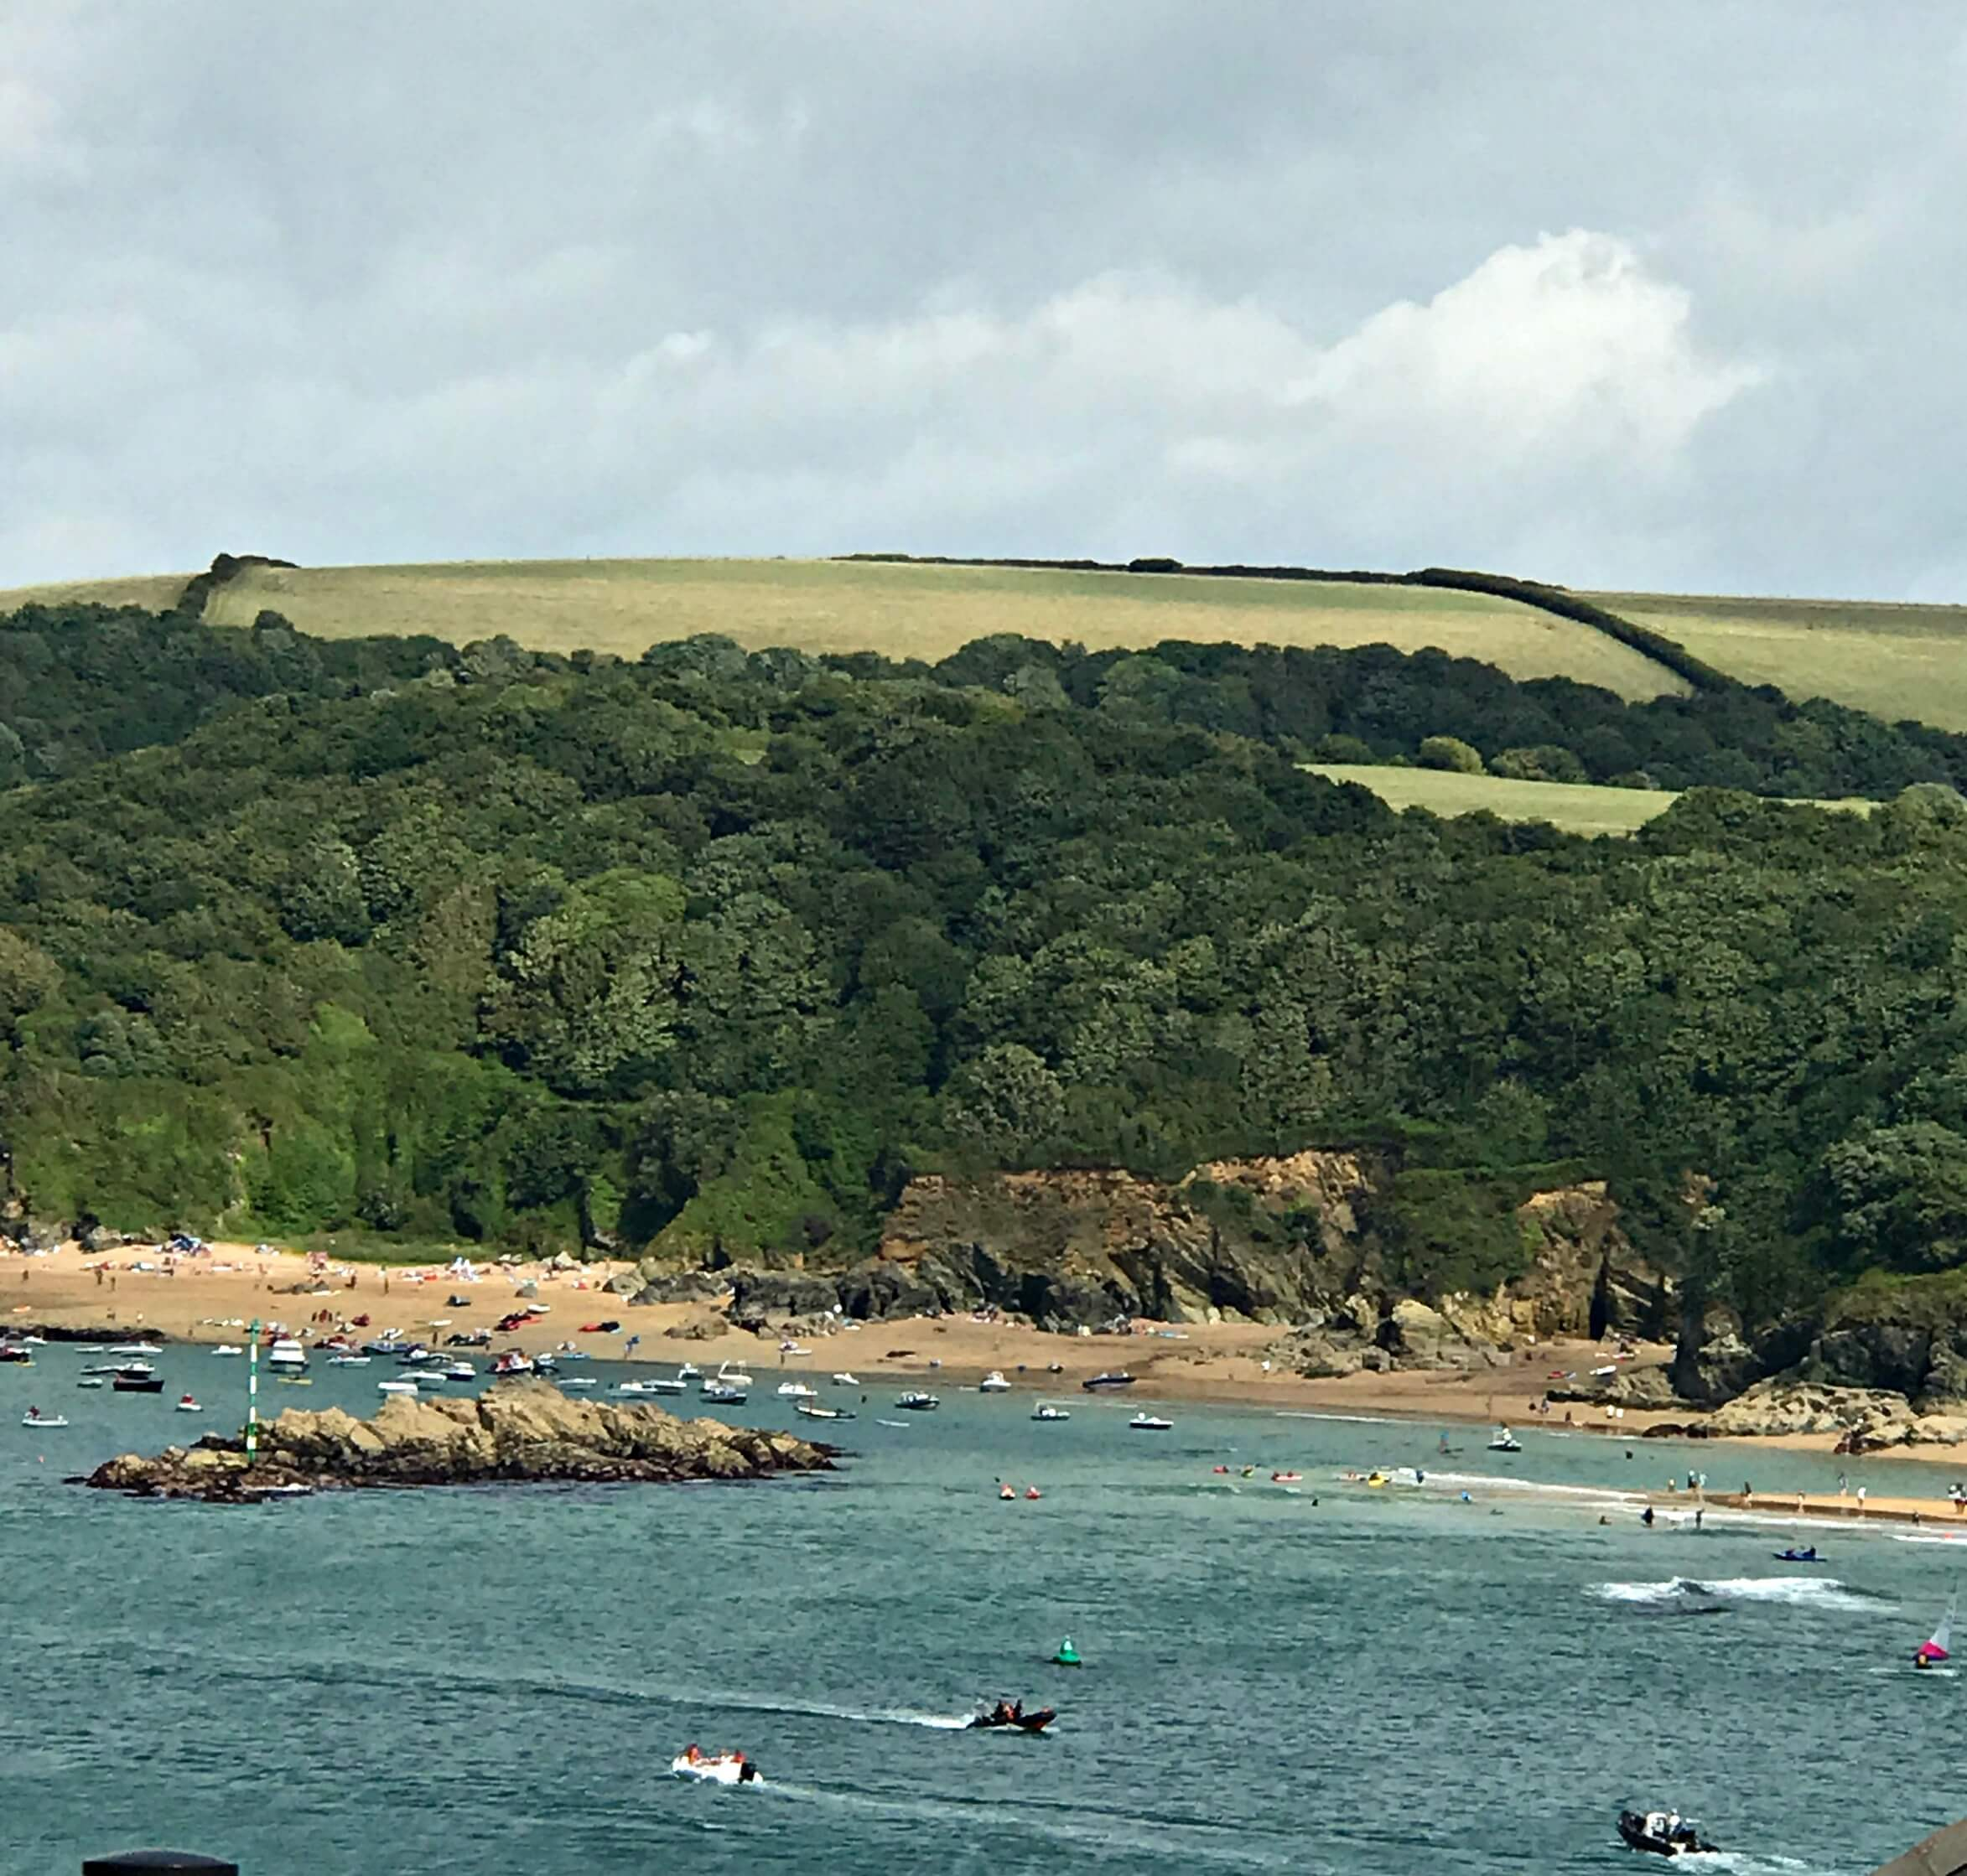 The view on the way up to Overbeck's garden and house in Salcombe